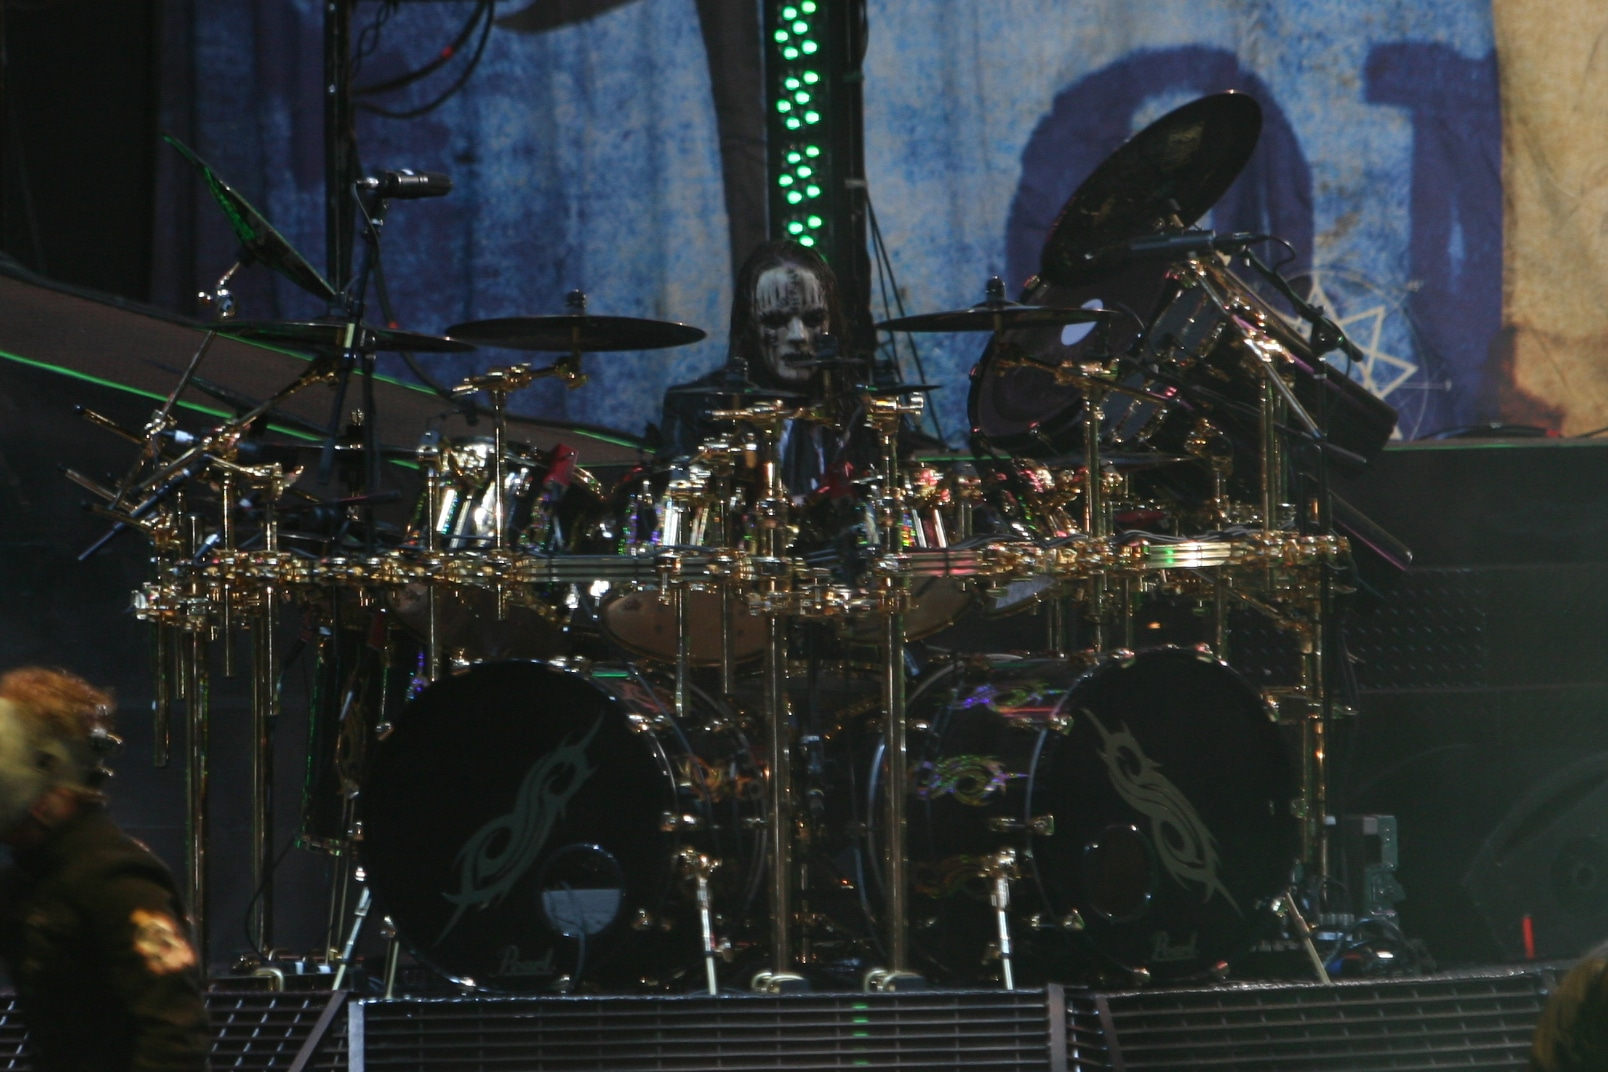 Joey jordison batteur de Slipknot